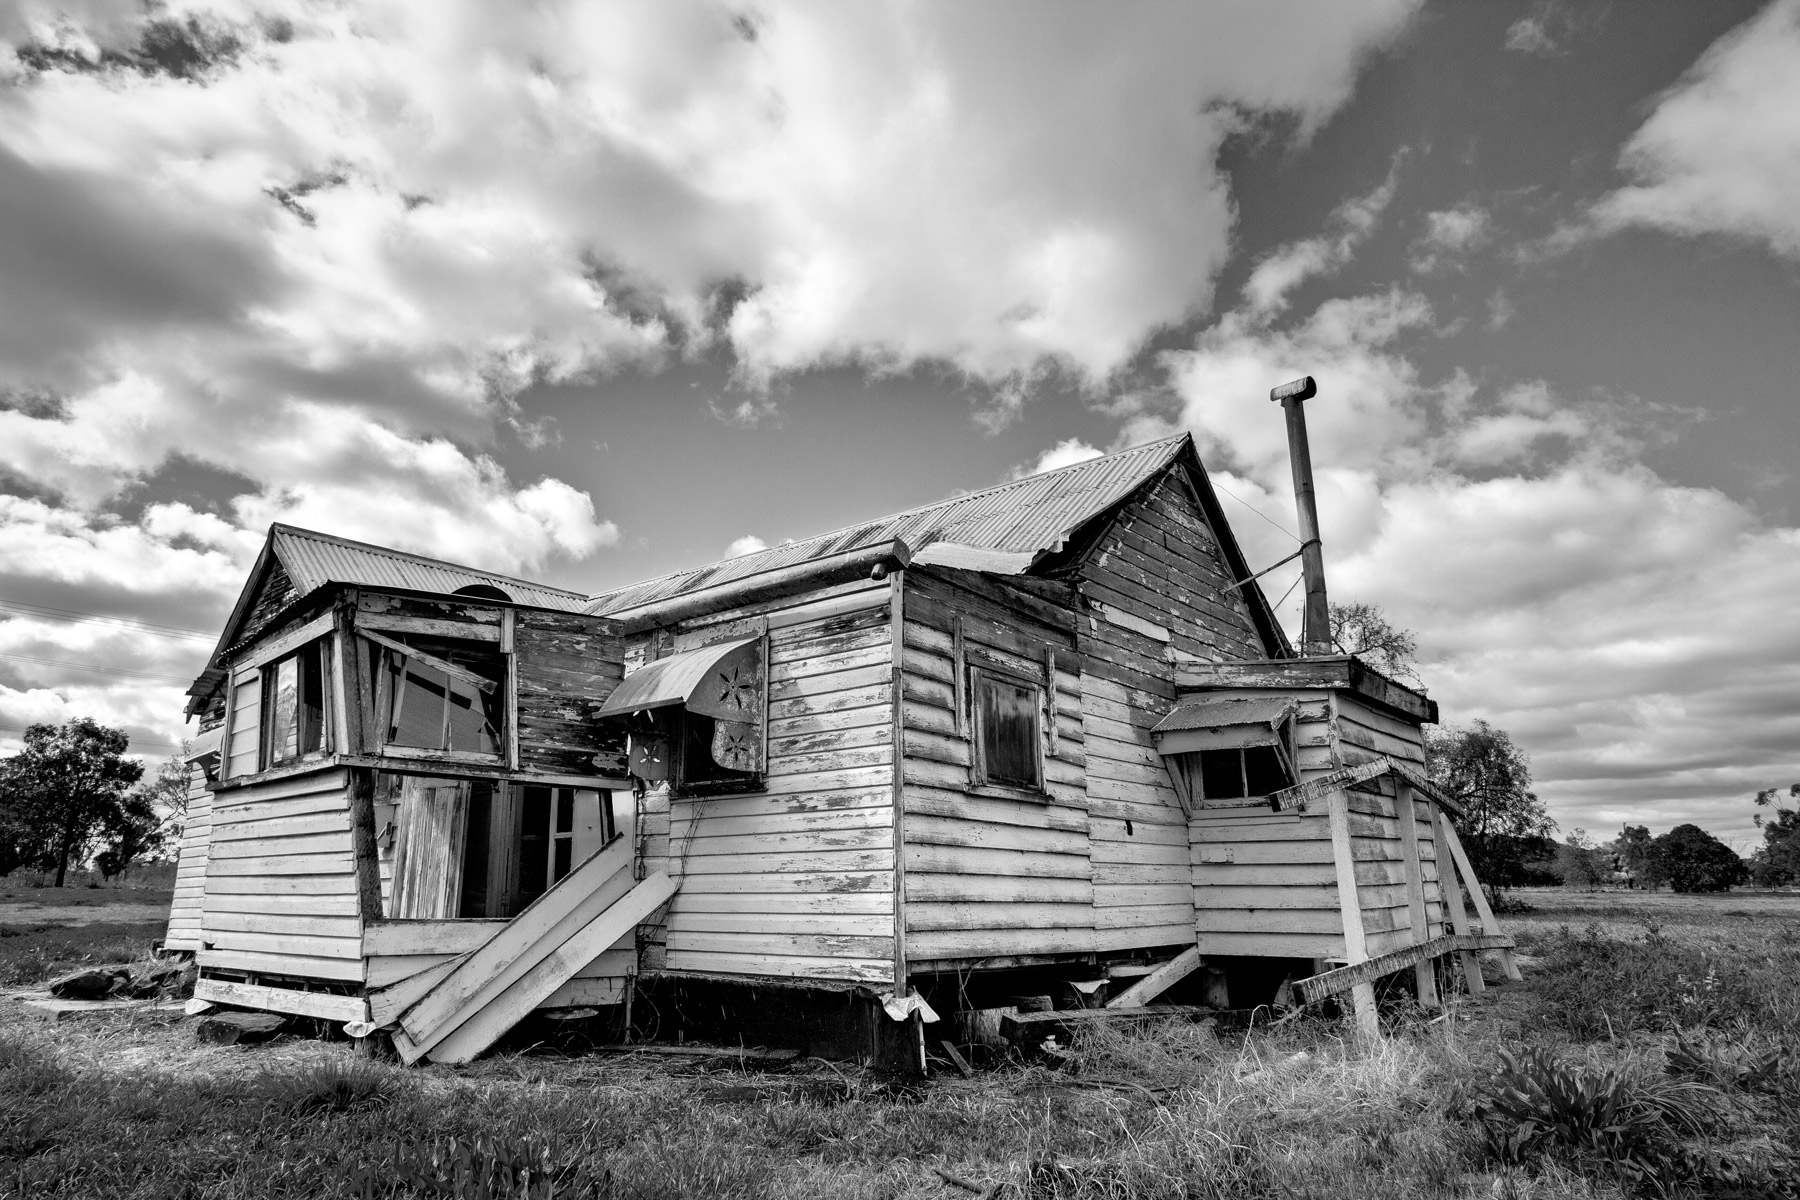 The exterior of an old abandoned house in Acland, Australia